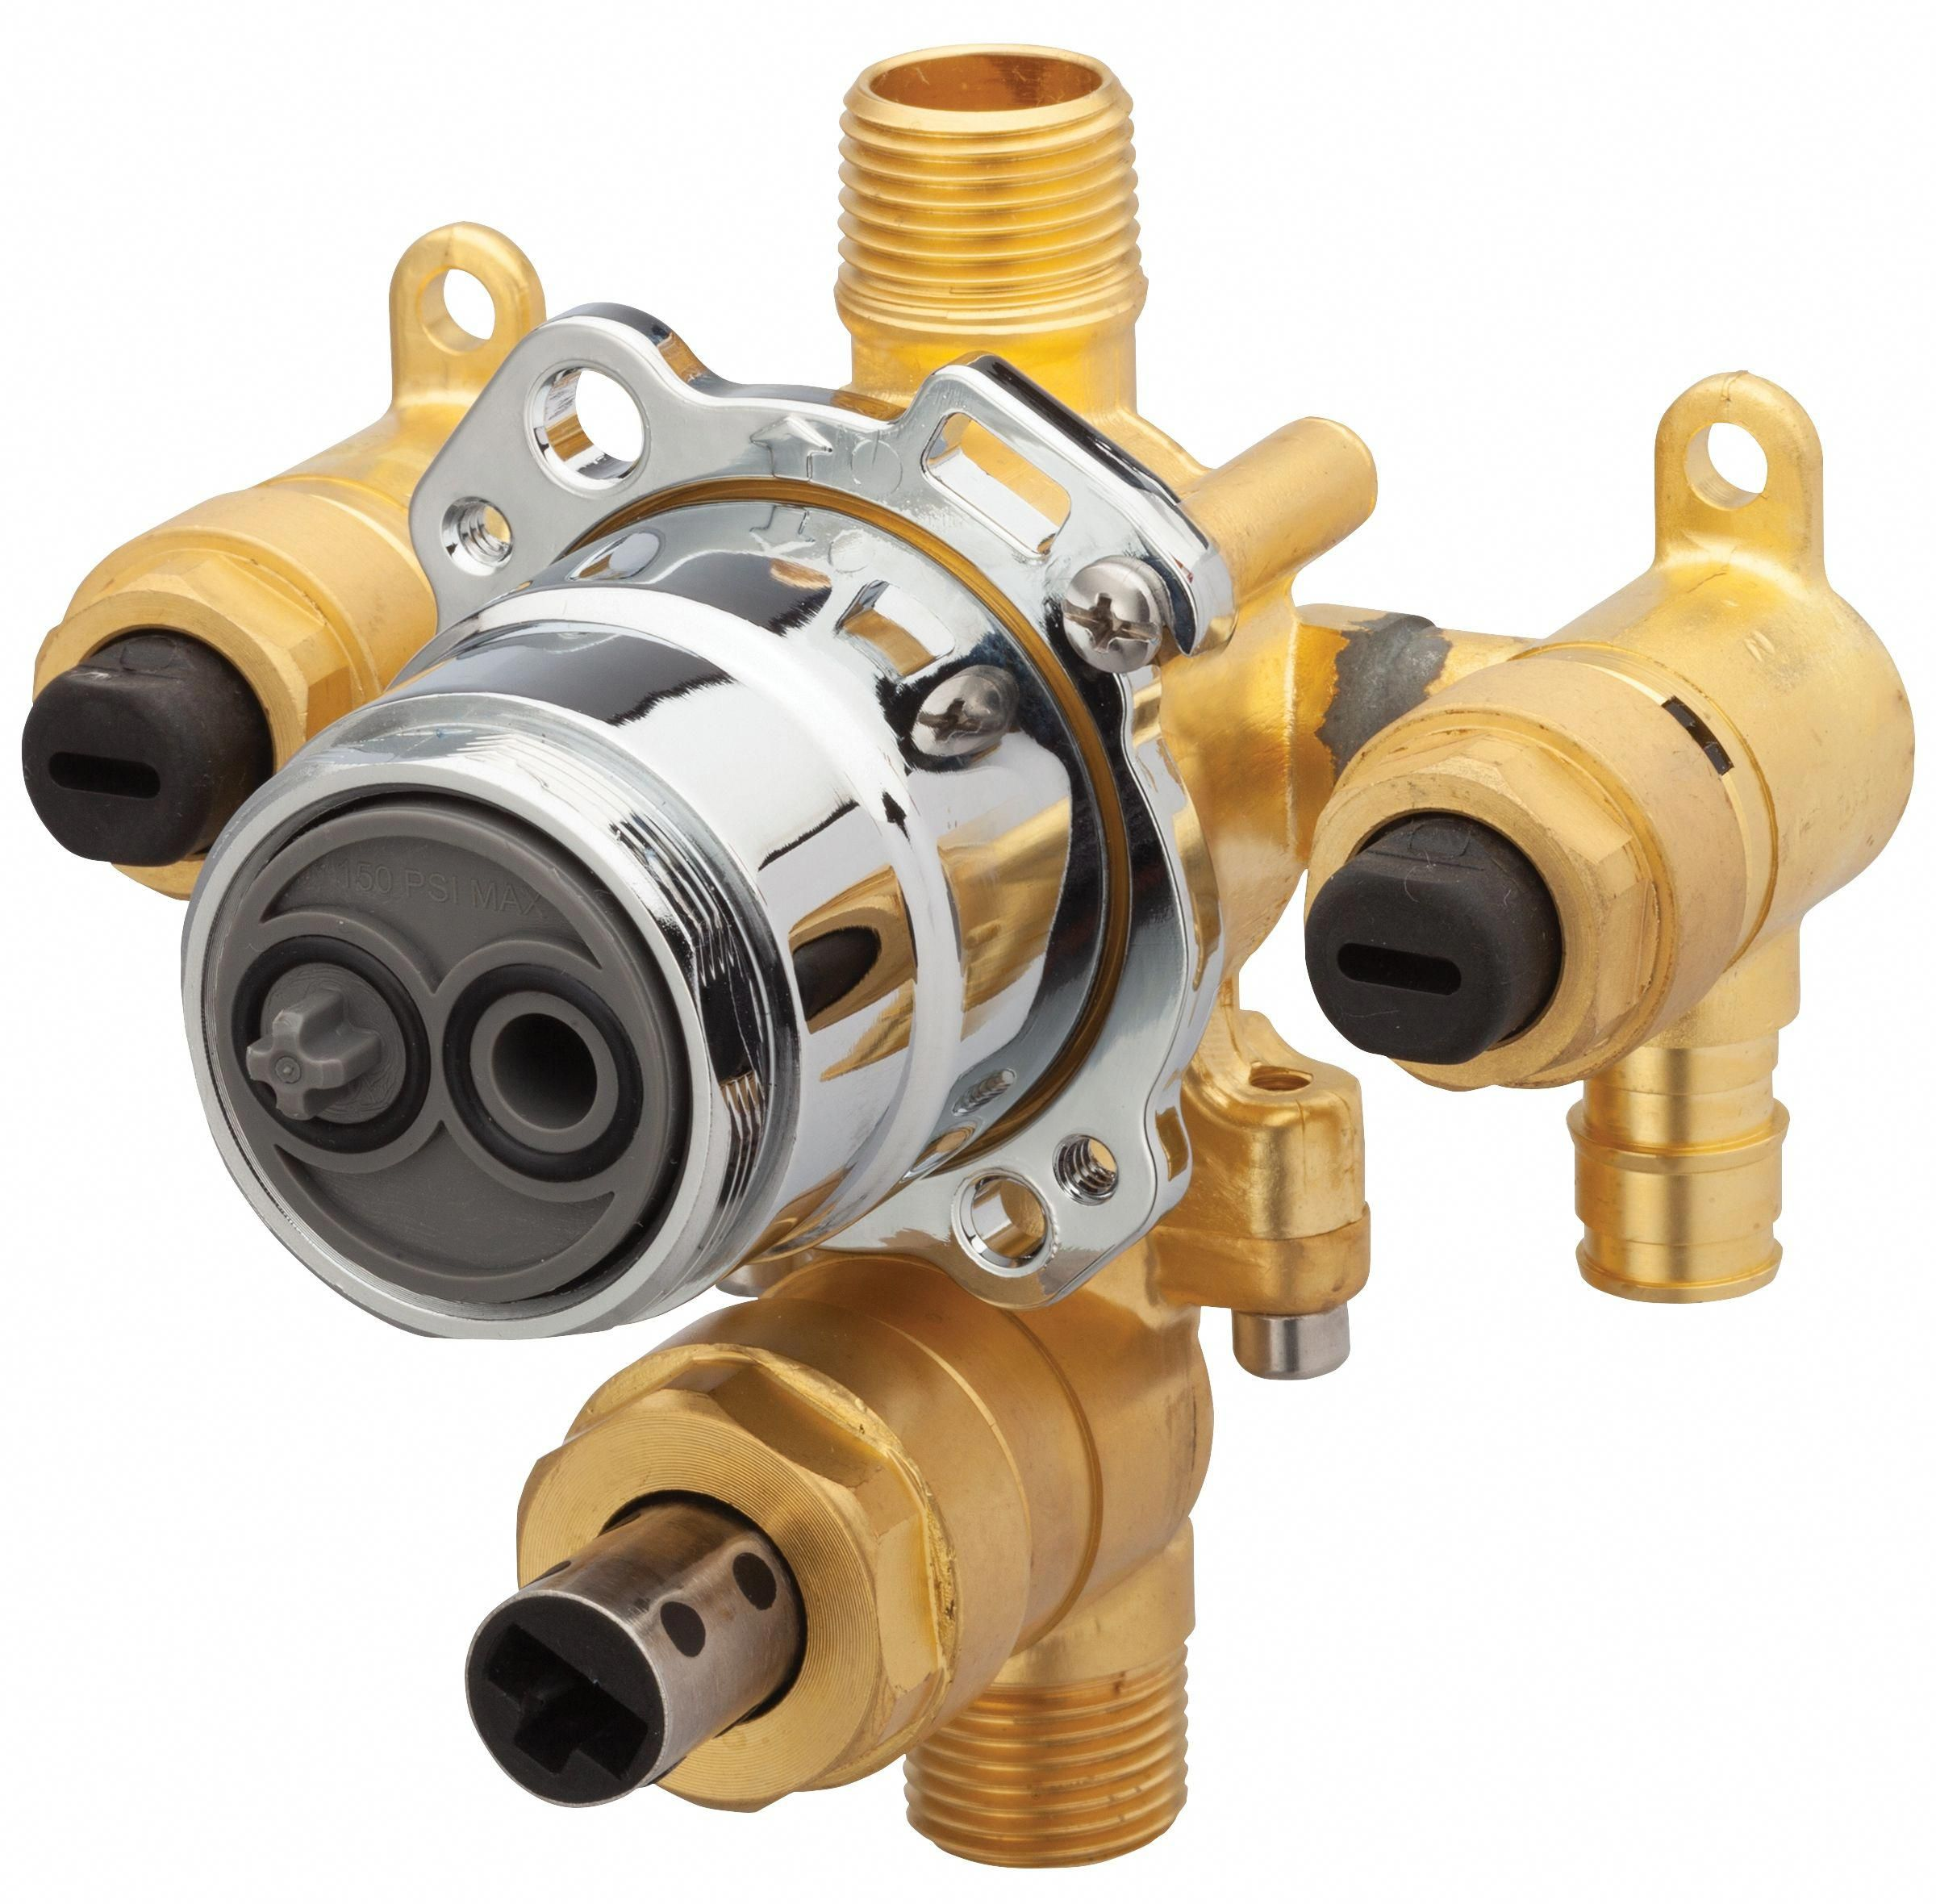 Gerber G00gs557s Treysta Tub Shower Valve Body With Diverter Cold Expansion Pex And Stops Pexpipethefamilyhandyman Shower Valve Shower Tub Shower Diverter